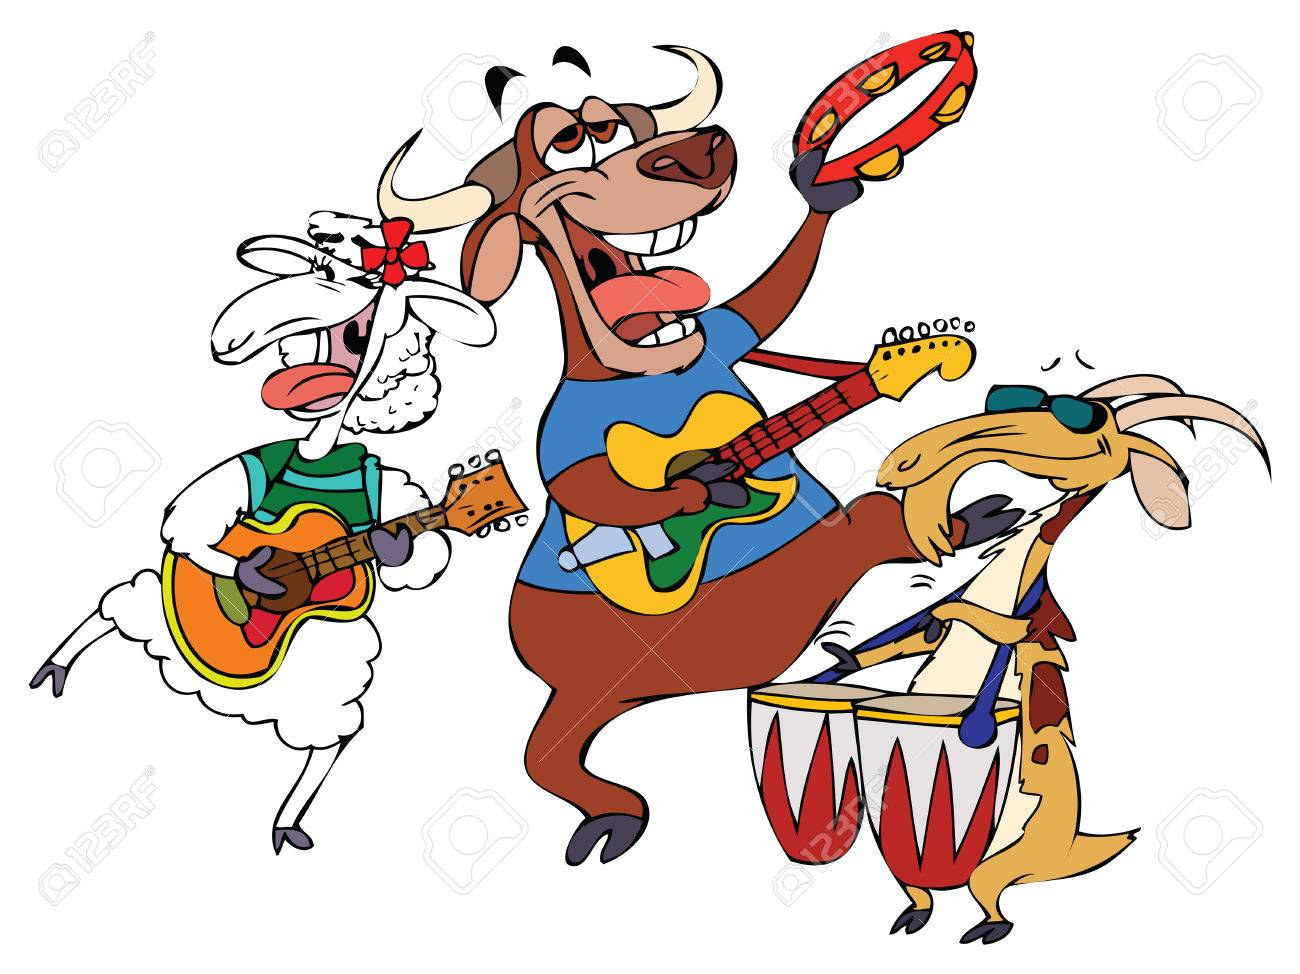 Cartoon Music Band Hornies Royalty Free Cliparts, Vectors, And ...